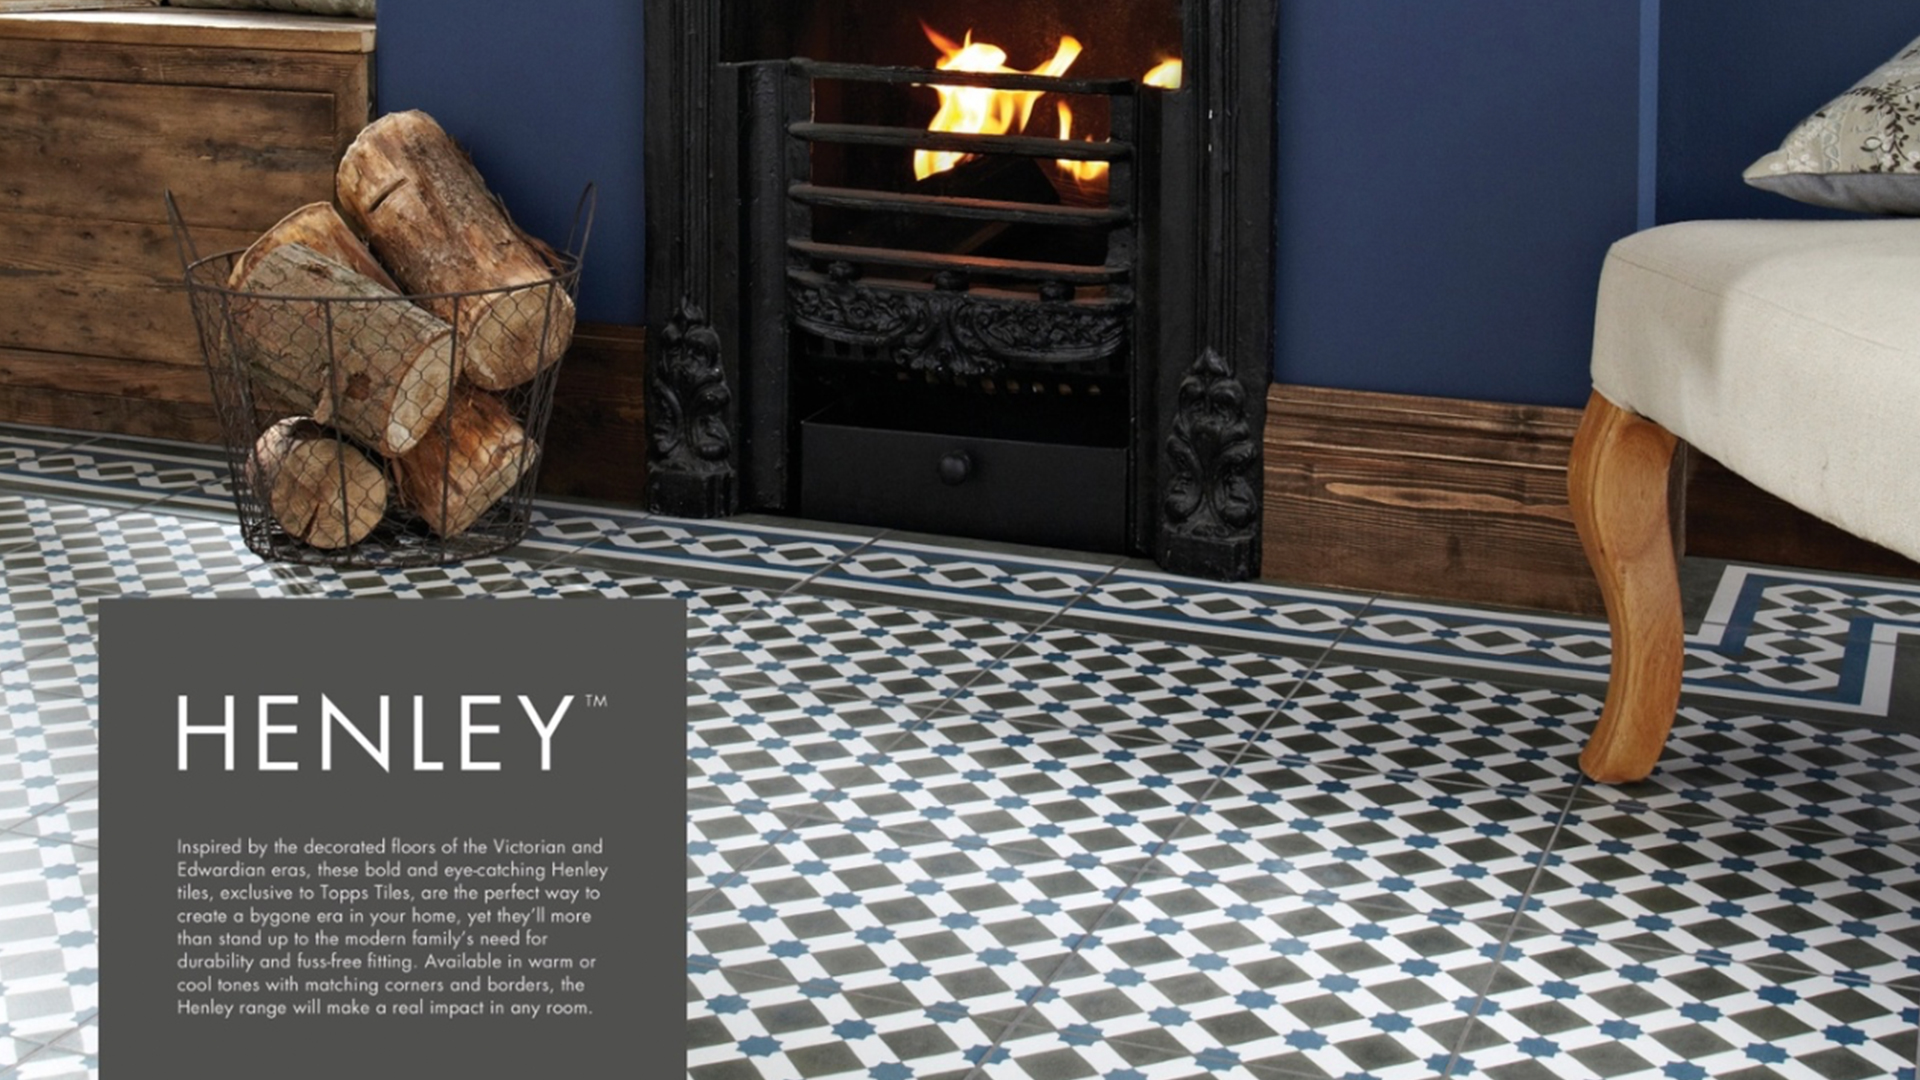 Topps tiles flooring reviewsdartrey black rhombus tile topps topps tiles team dailygadgetfo Gallery